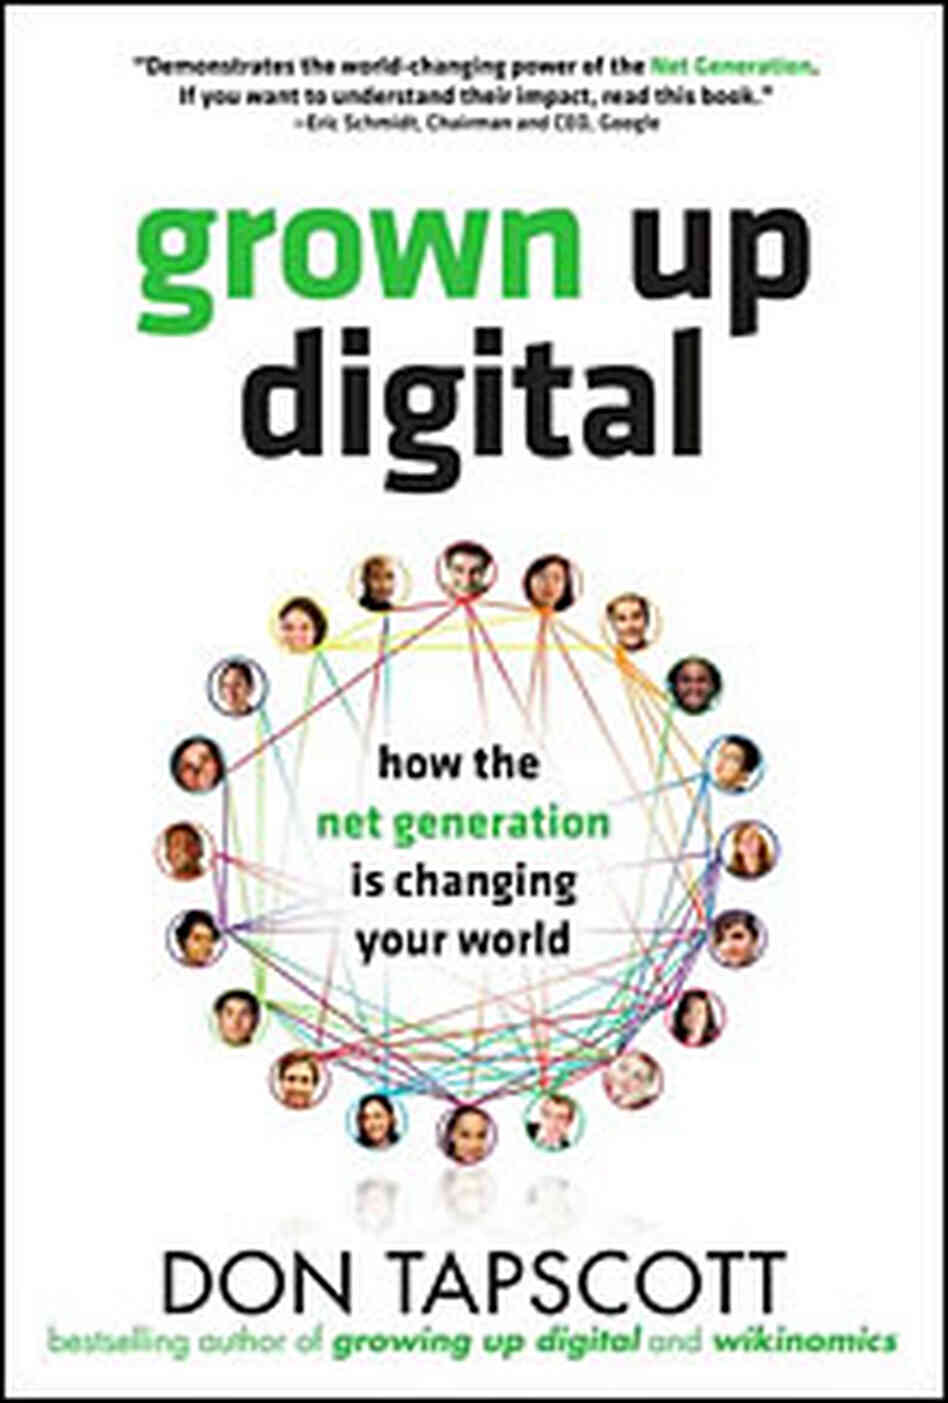 Don Tapscott's 'Grown Up Digital'